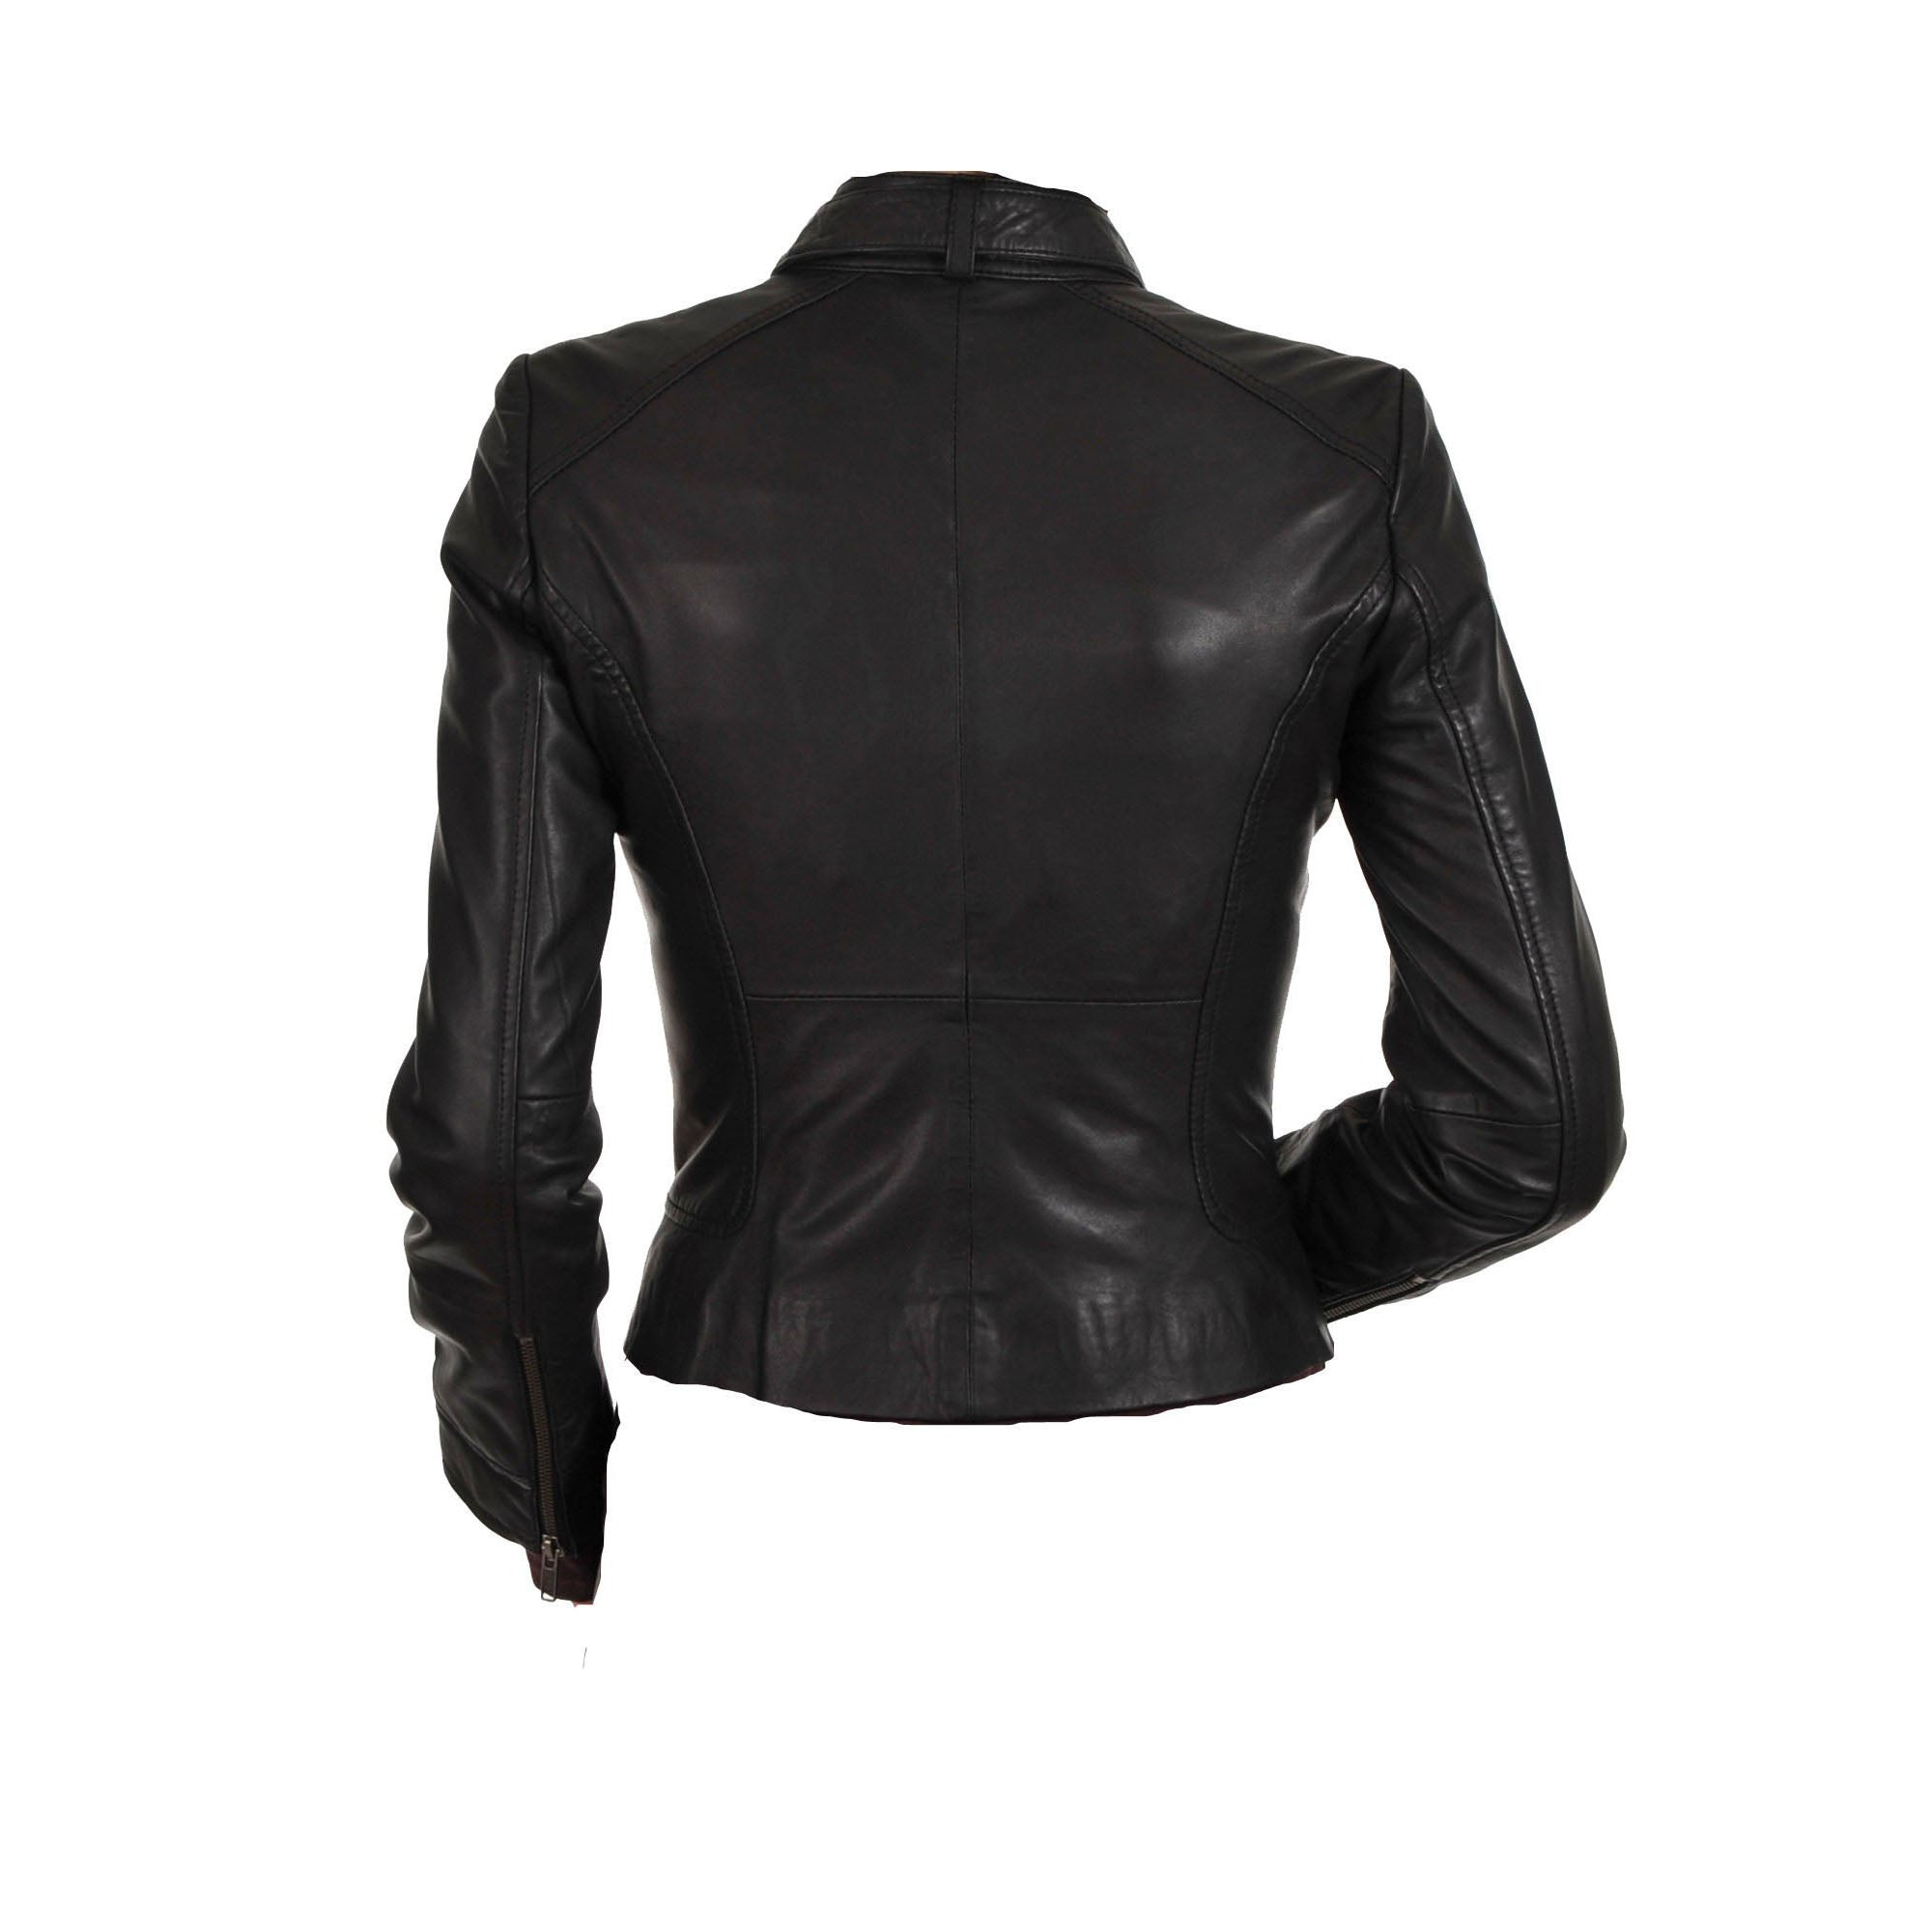 Women's black leather jacket with collar belt - Lusso Leather - 2